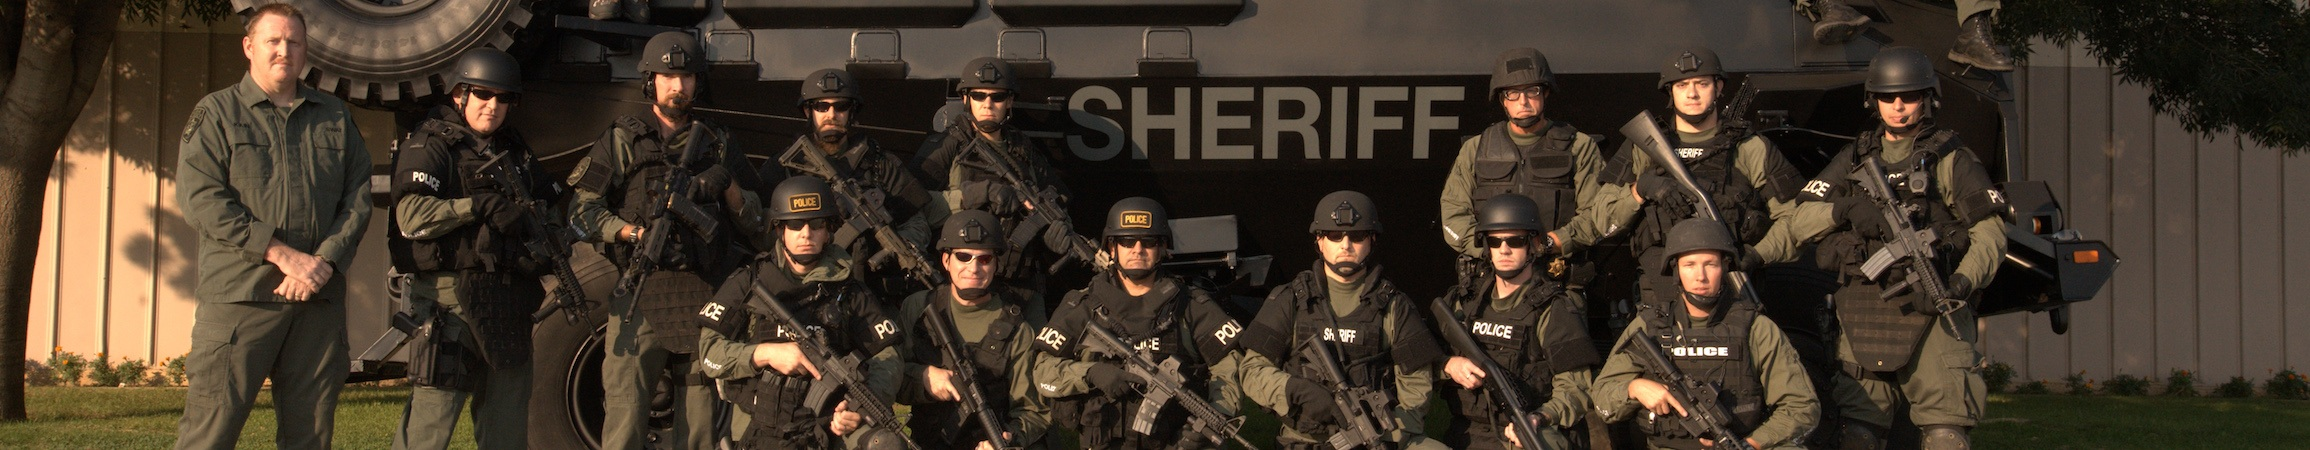 Operations Division | Tehama County Sheriff's Office